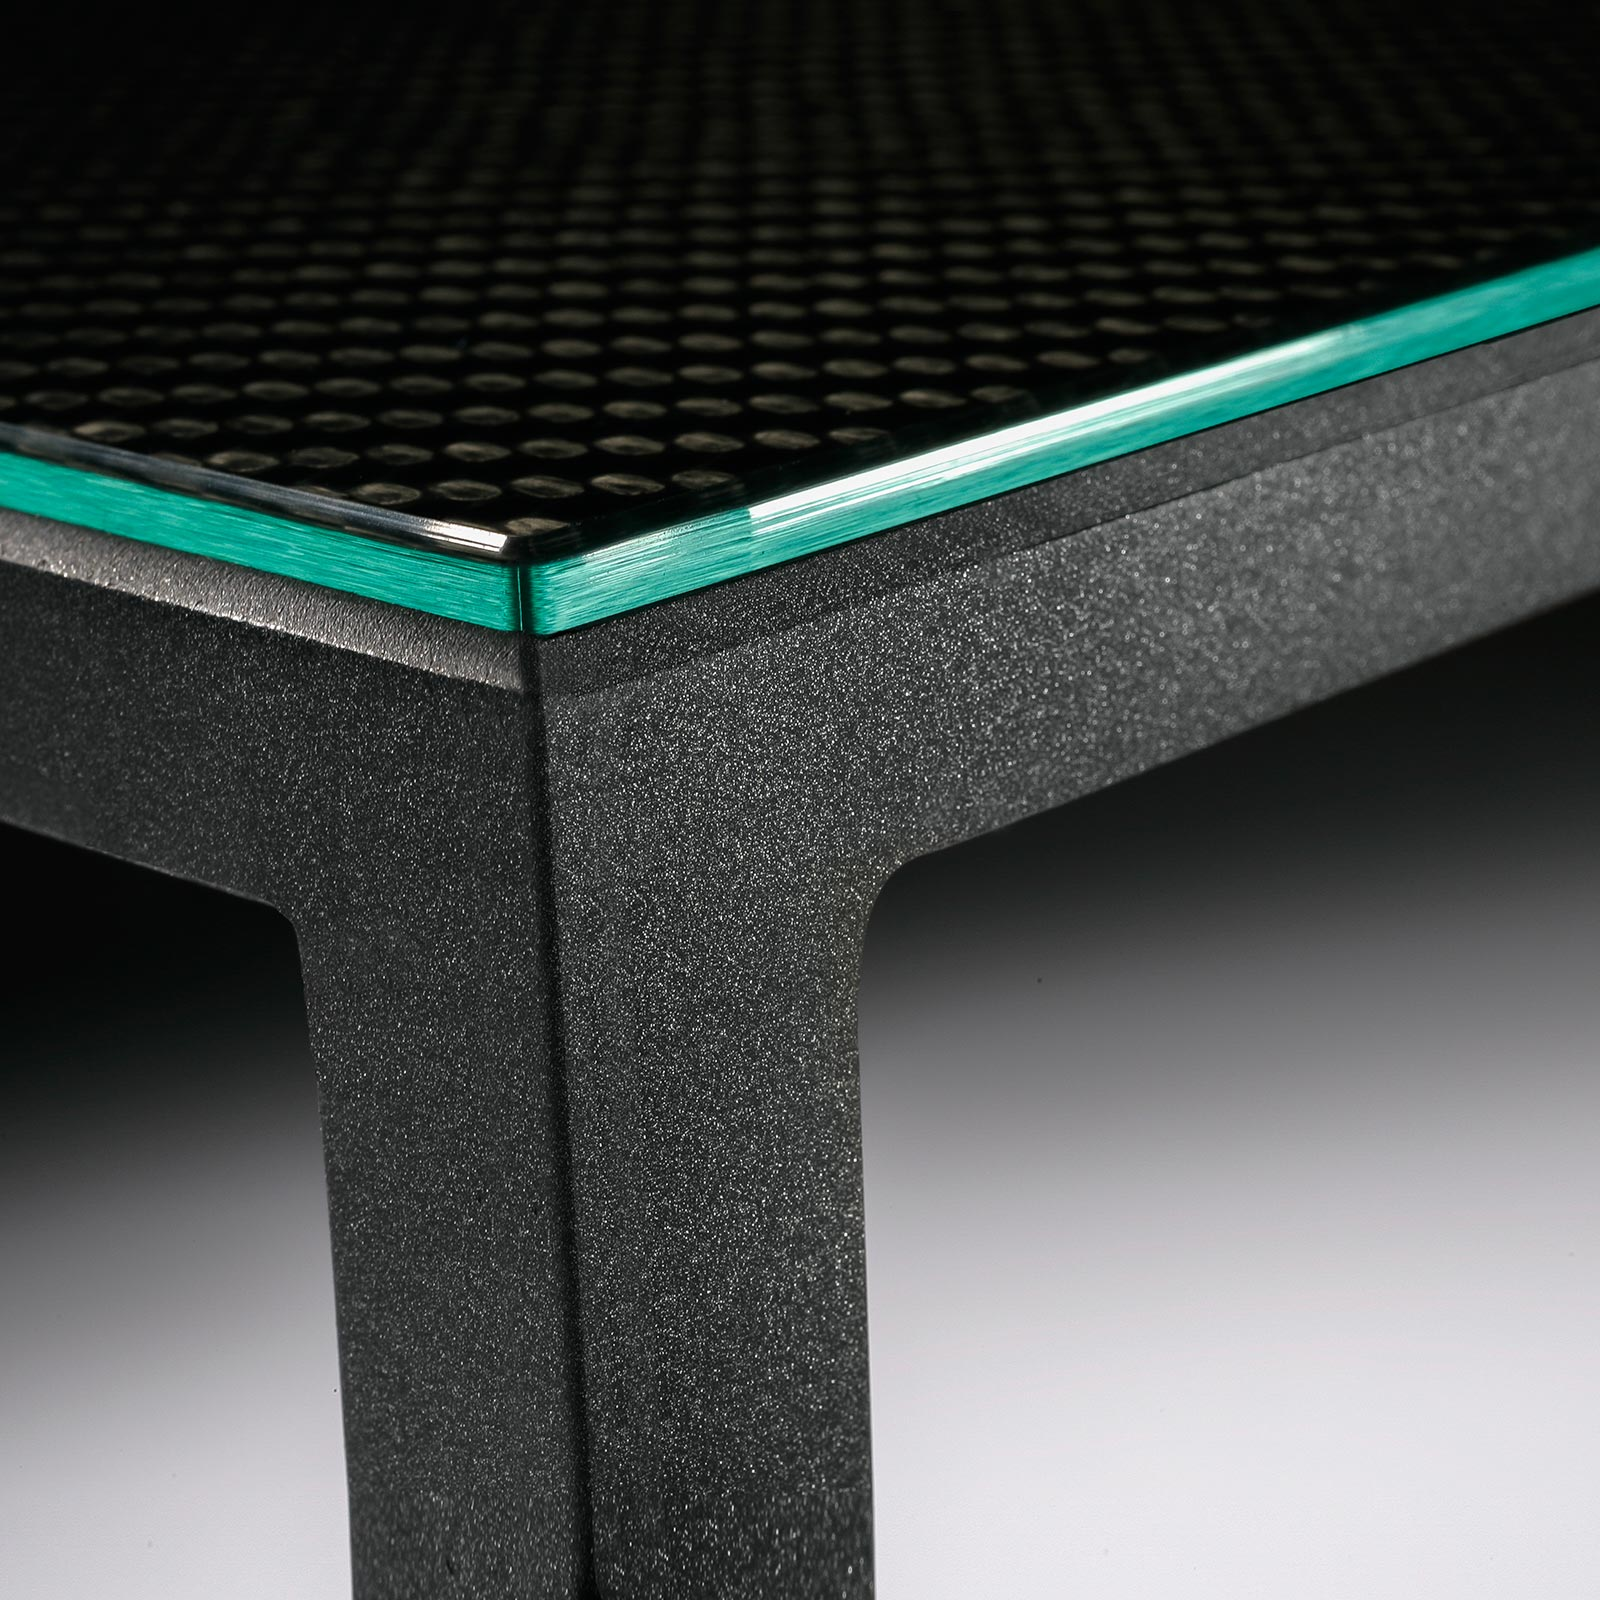 Carbon Fiber Gifts For Him, Home And Office And Interior Design Products Good Looking